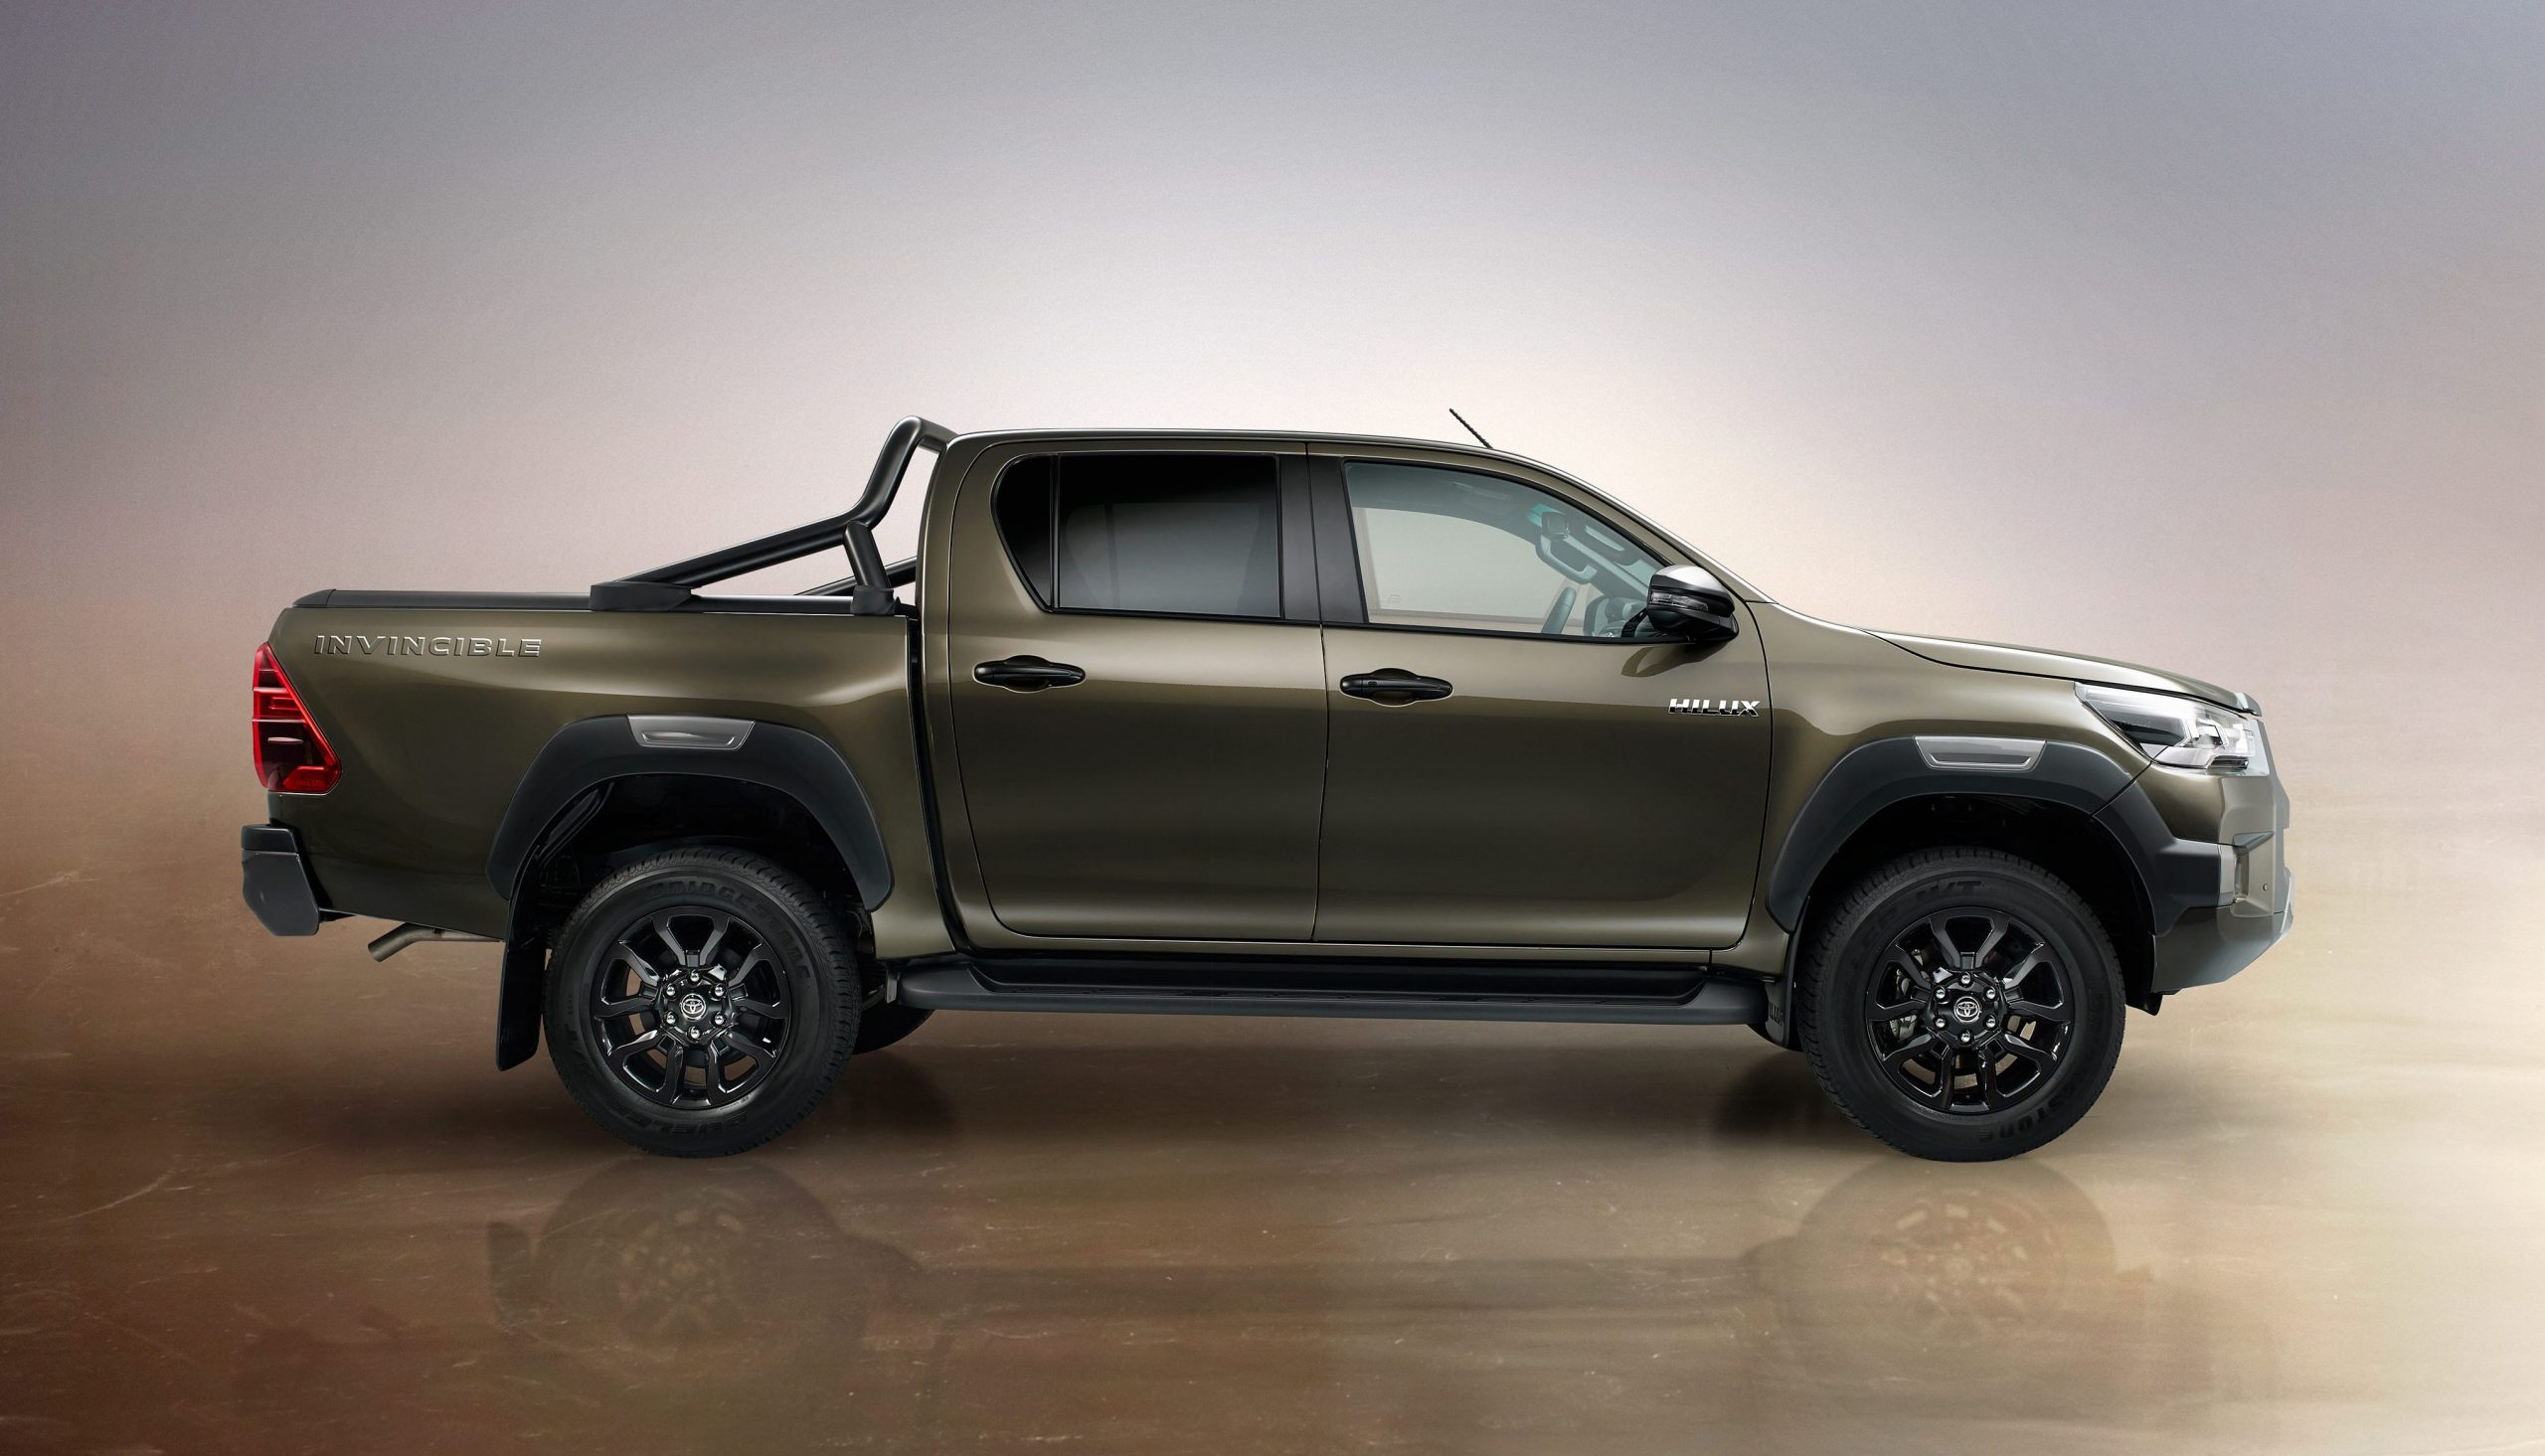 2021 Toyota Hilux Invincible in Titan Bronze - side profile view